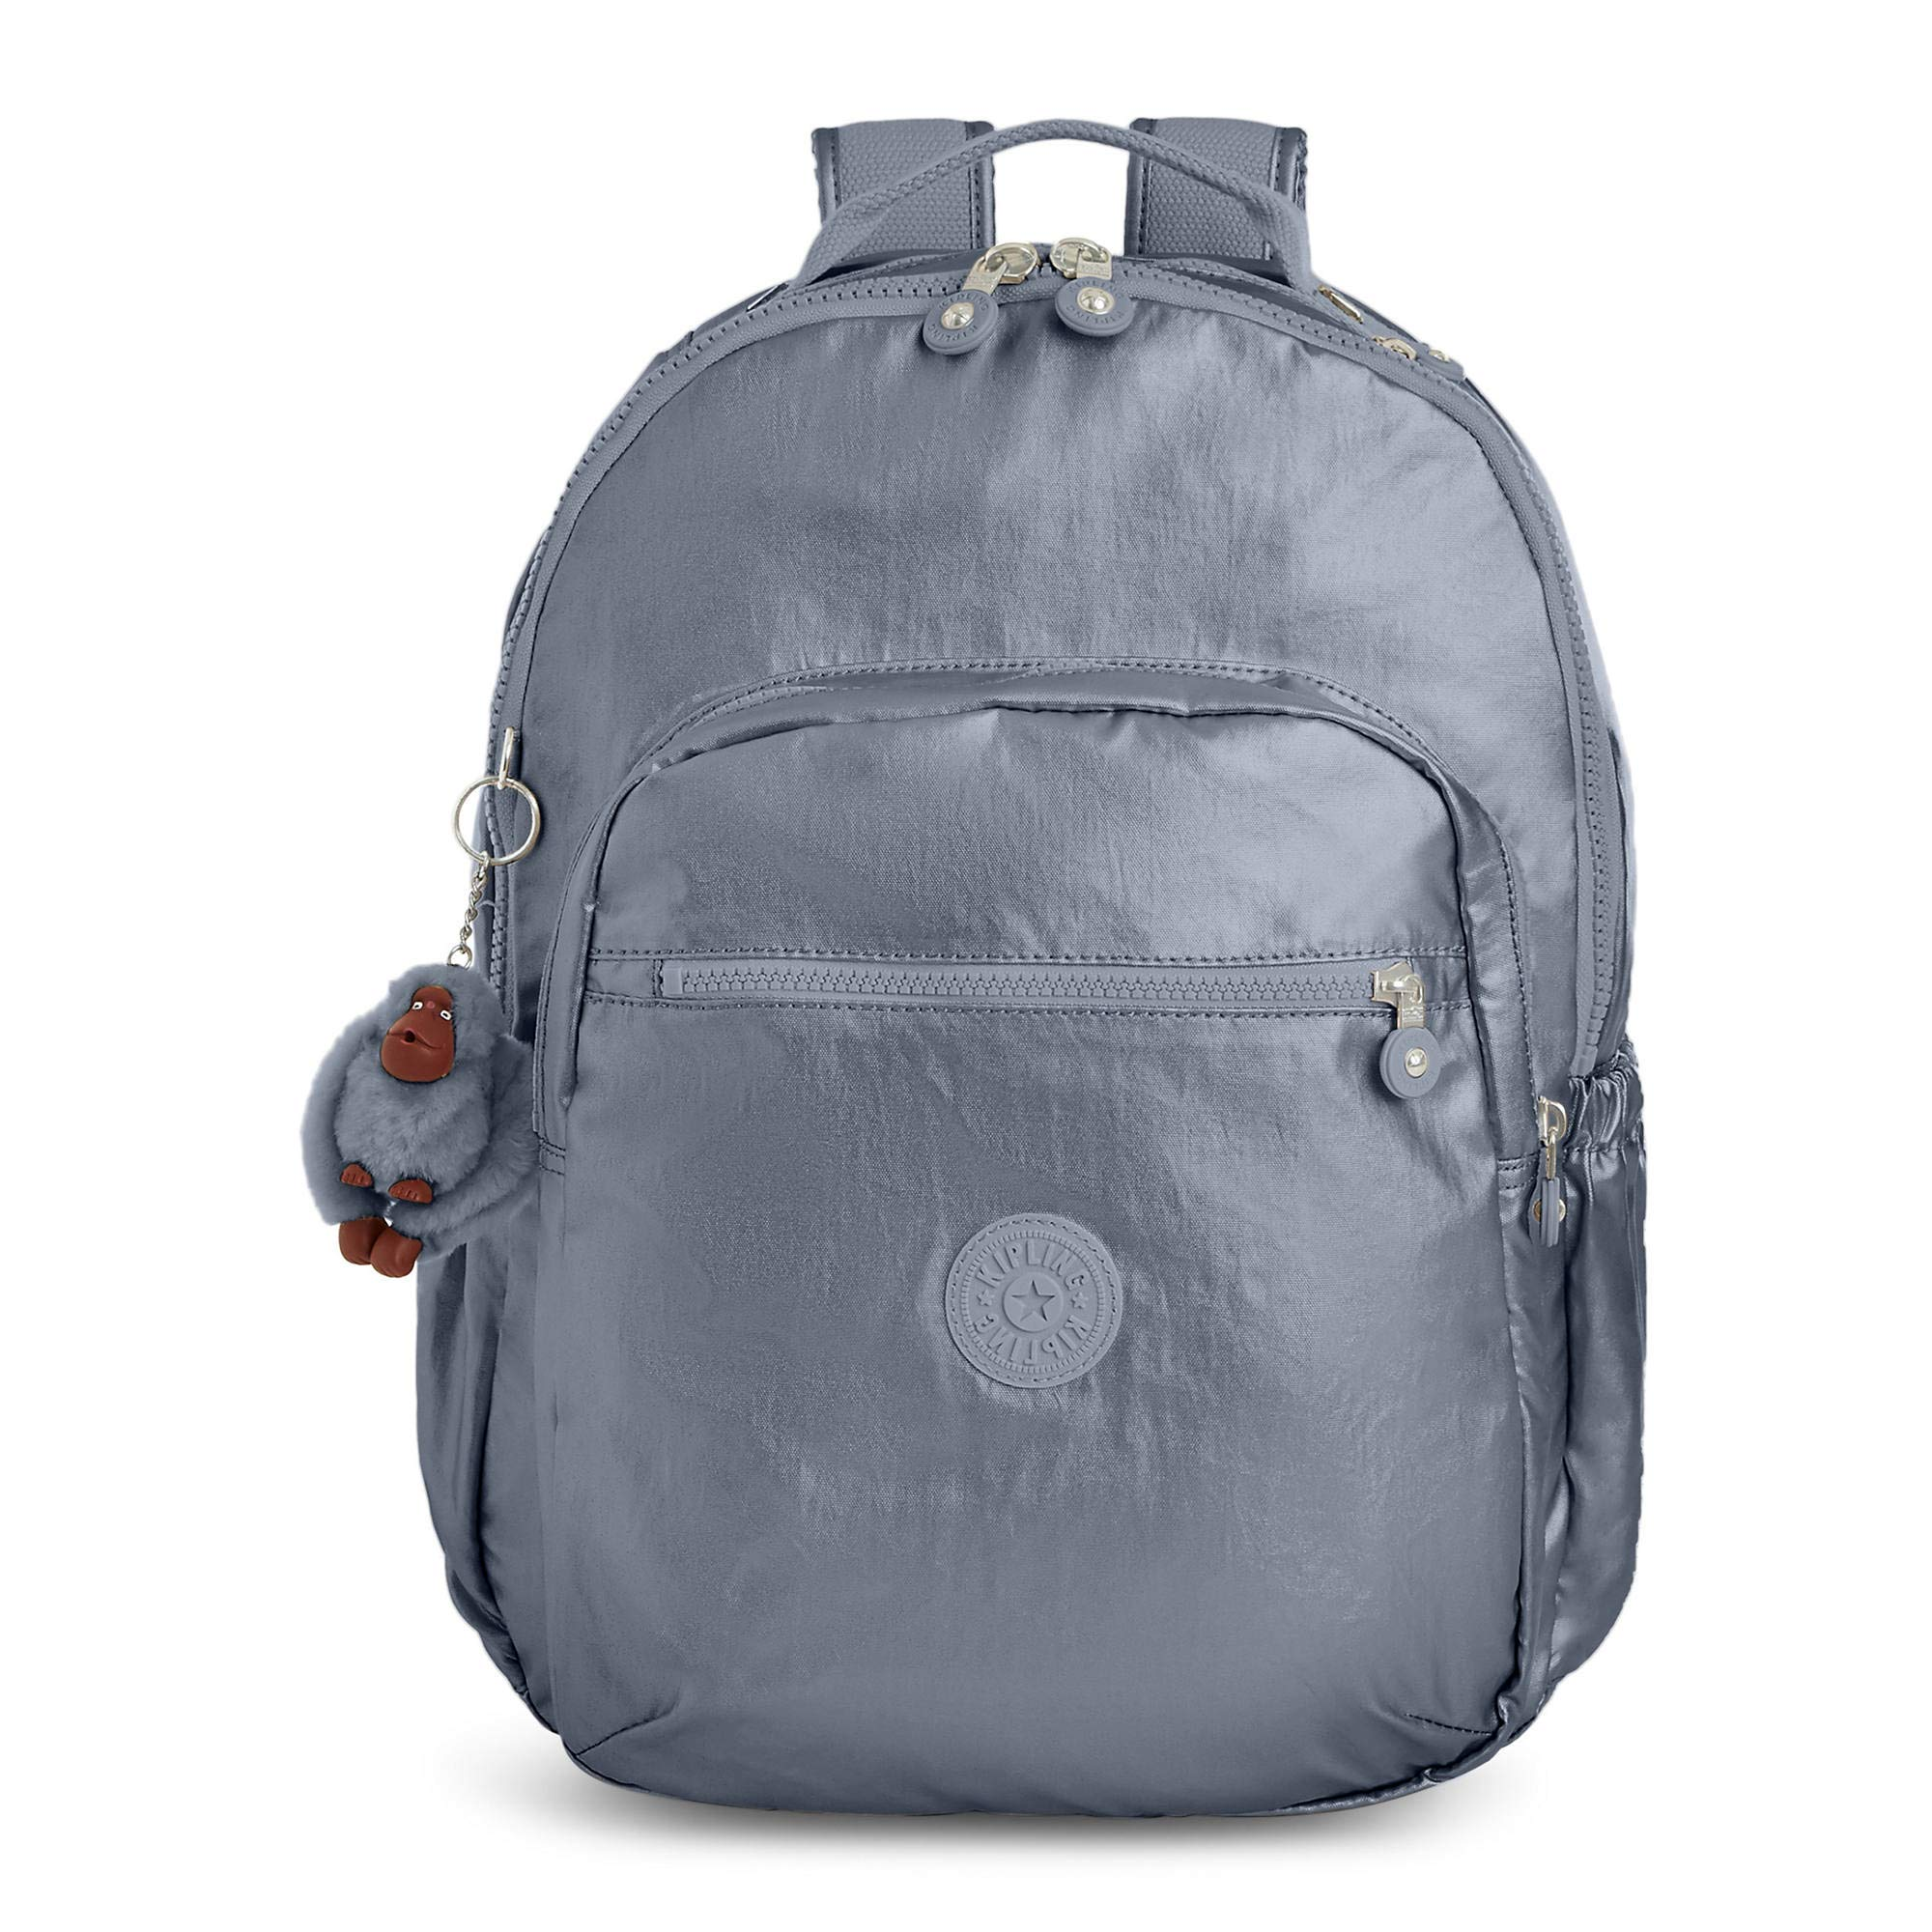 Kipling Seoul Go Large Metallic 15'' Laptop Backpack One Size Steel Grey Metallic